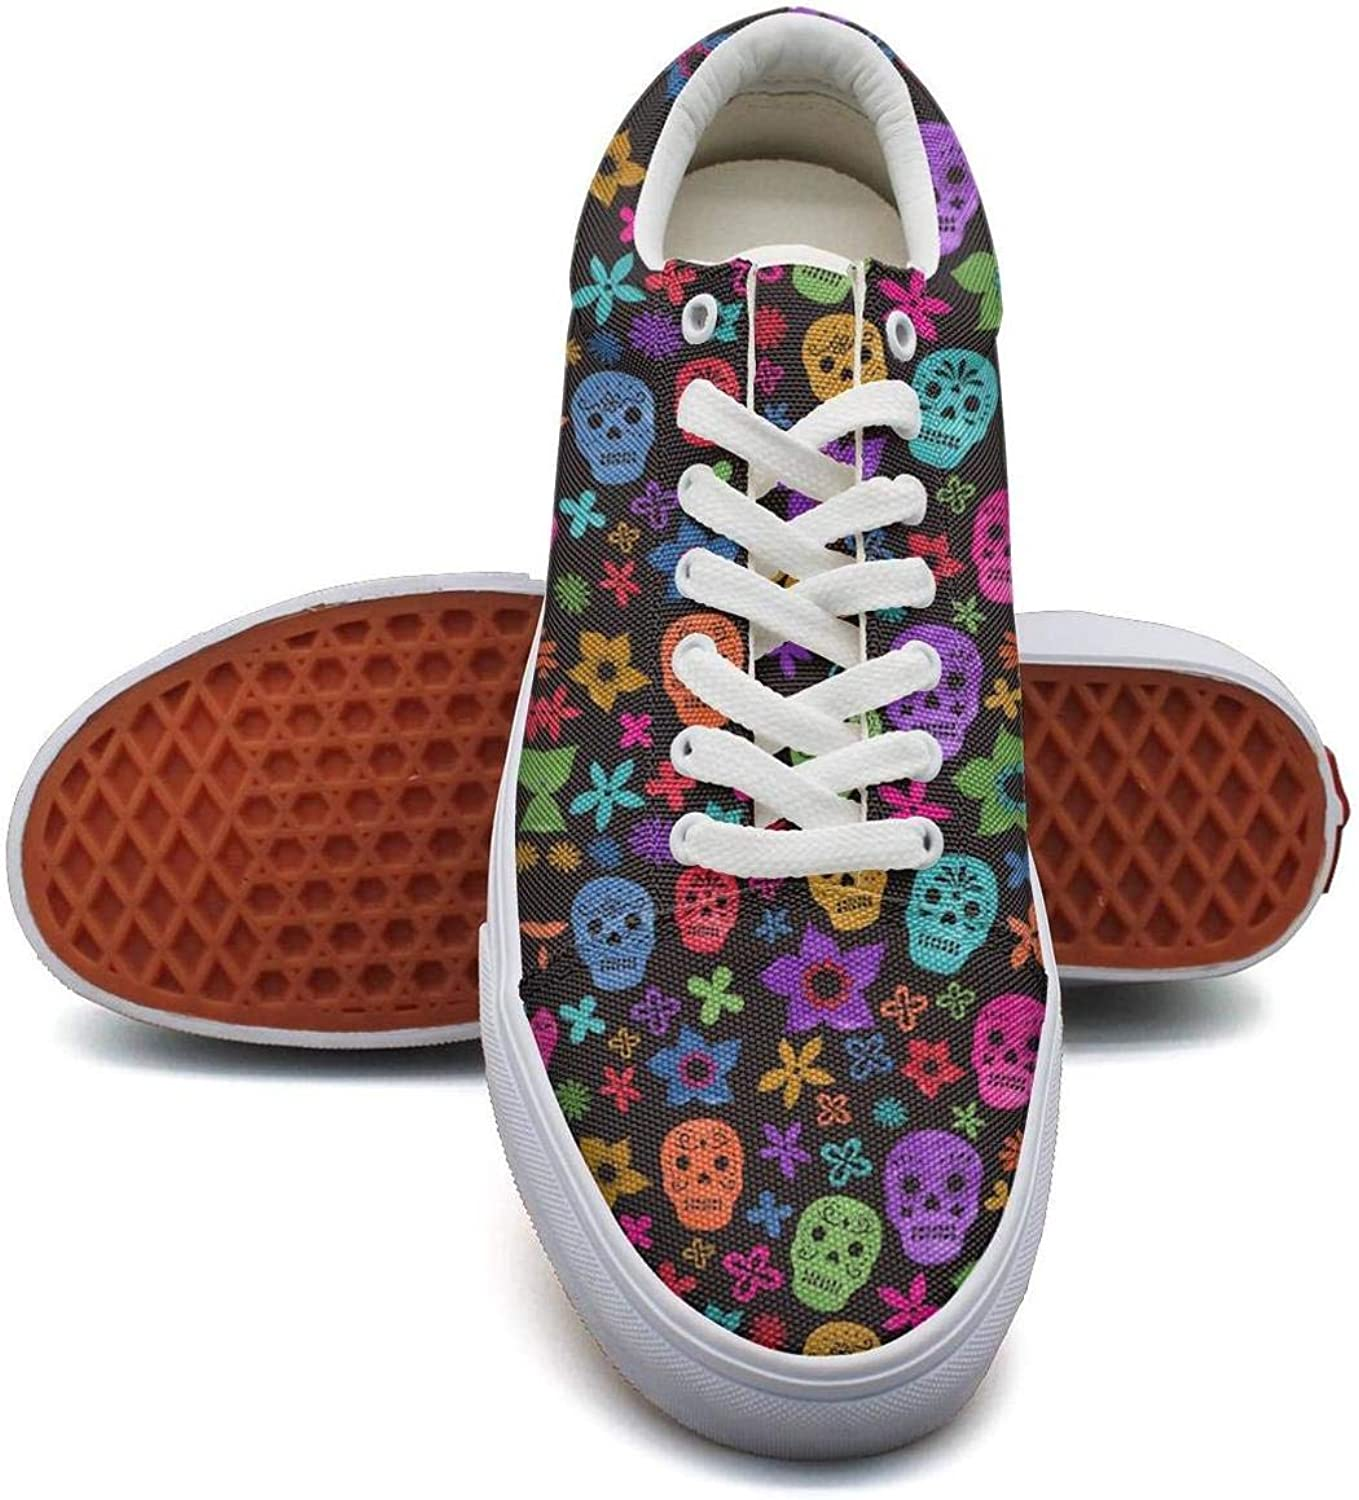 Pretty Women BAD Skulls & BAD bones Sneakers Cool shoes